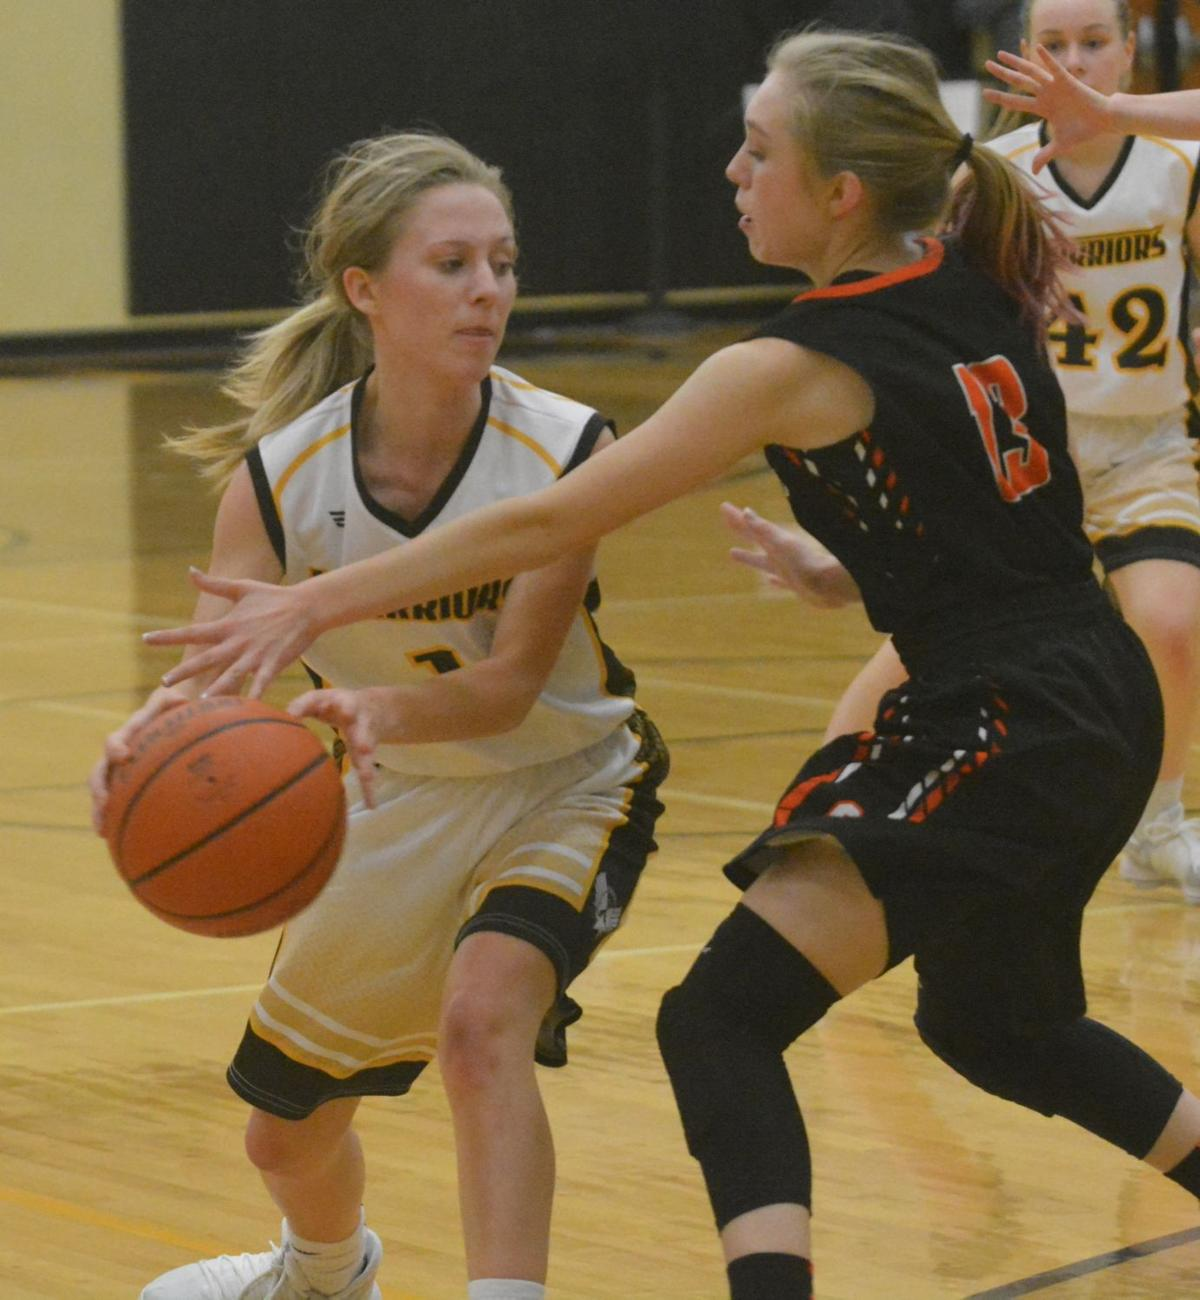 PHS girls basketball: Riley Weaver